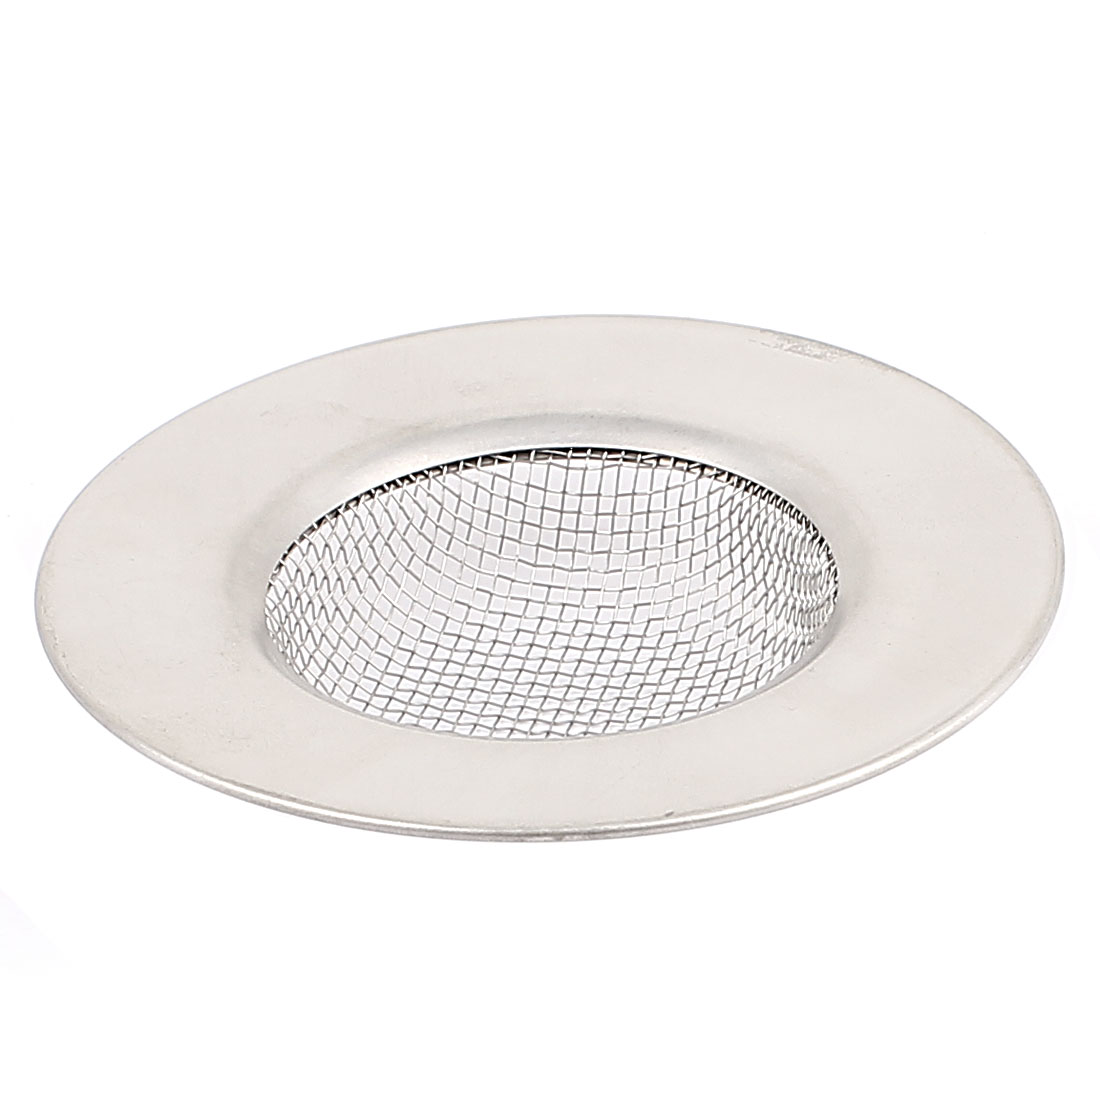 Stainless Steel Basin Mesh Sink Drainer Strainer 3 Inch Dia